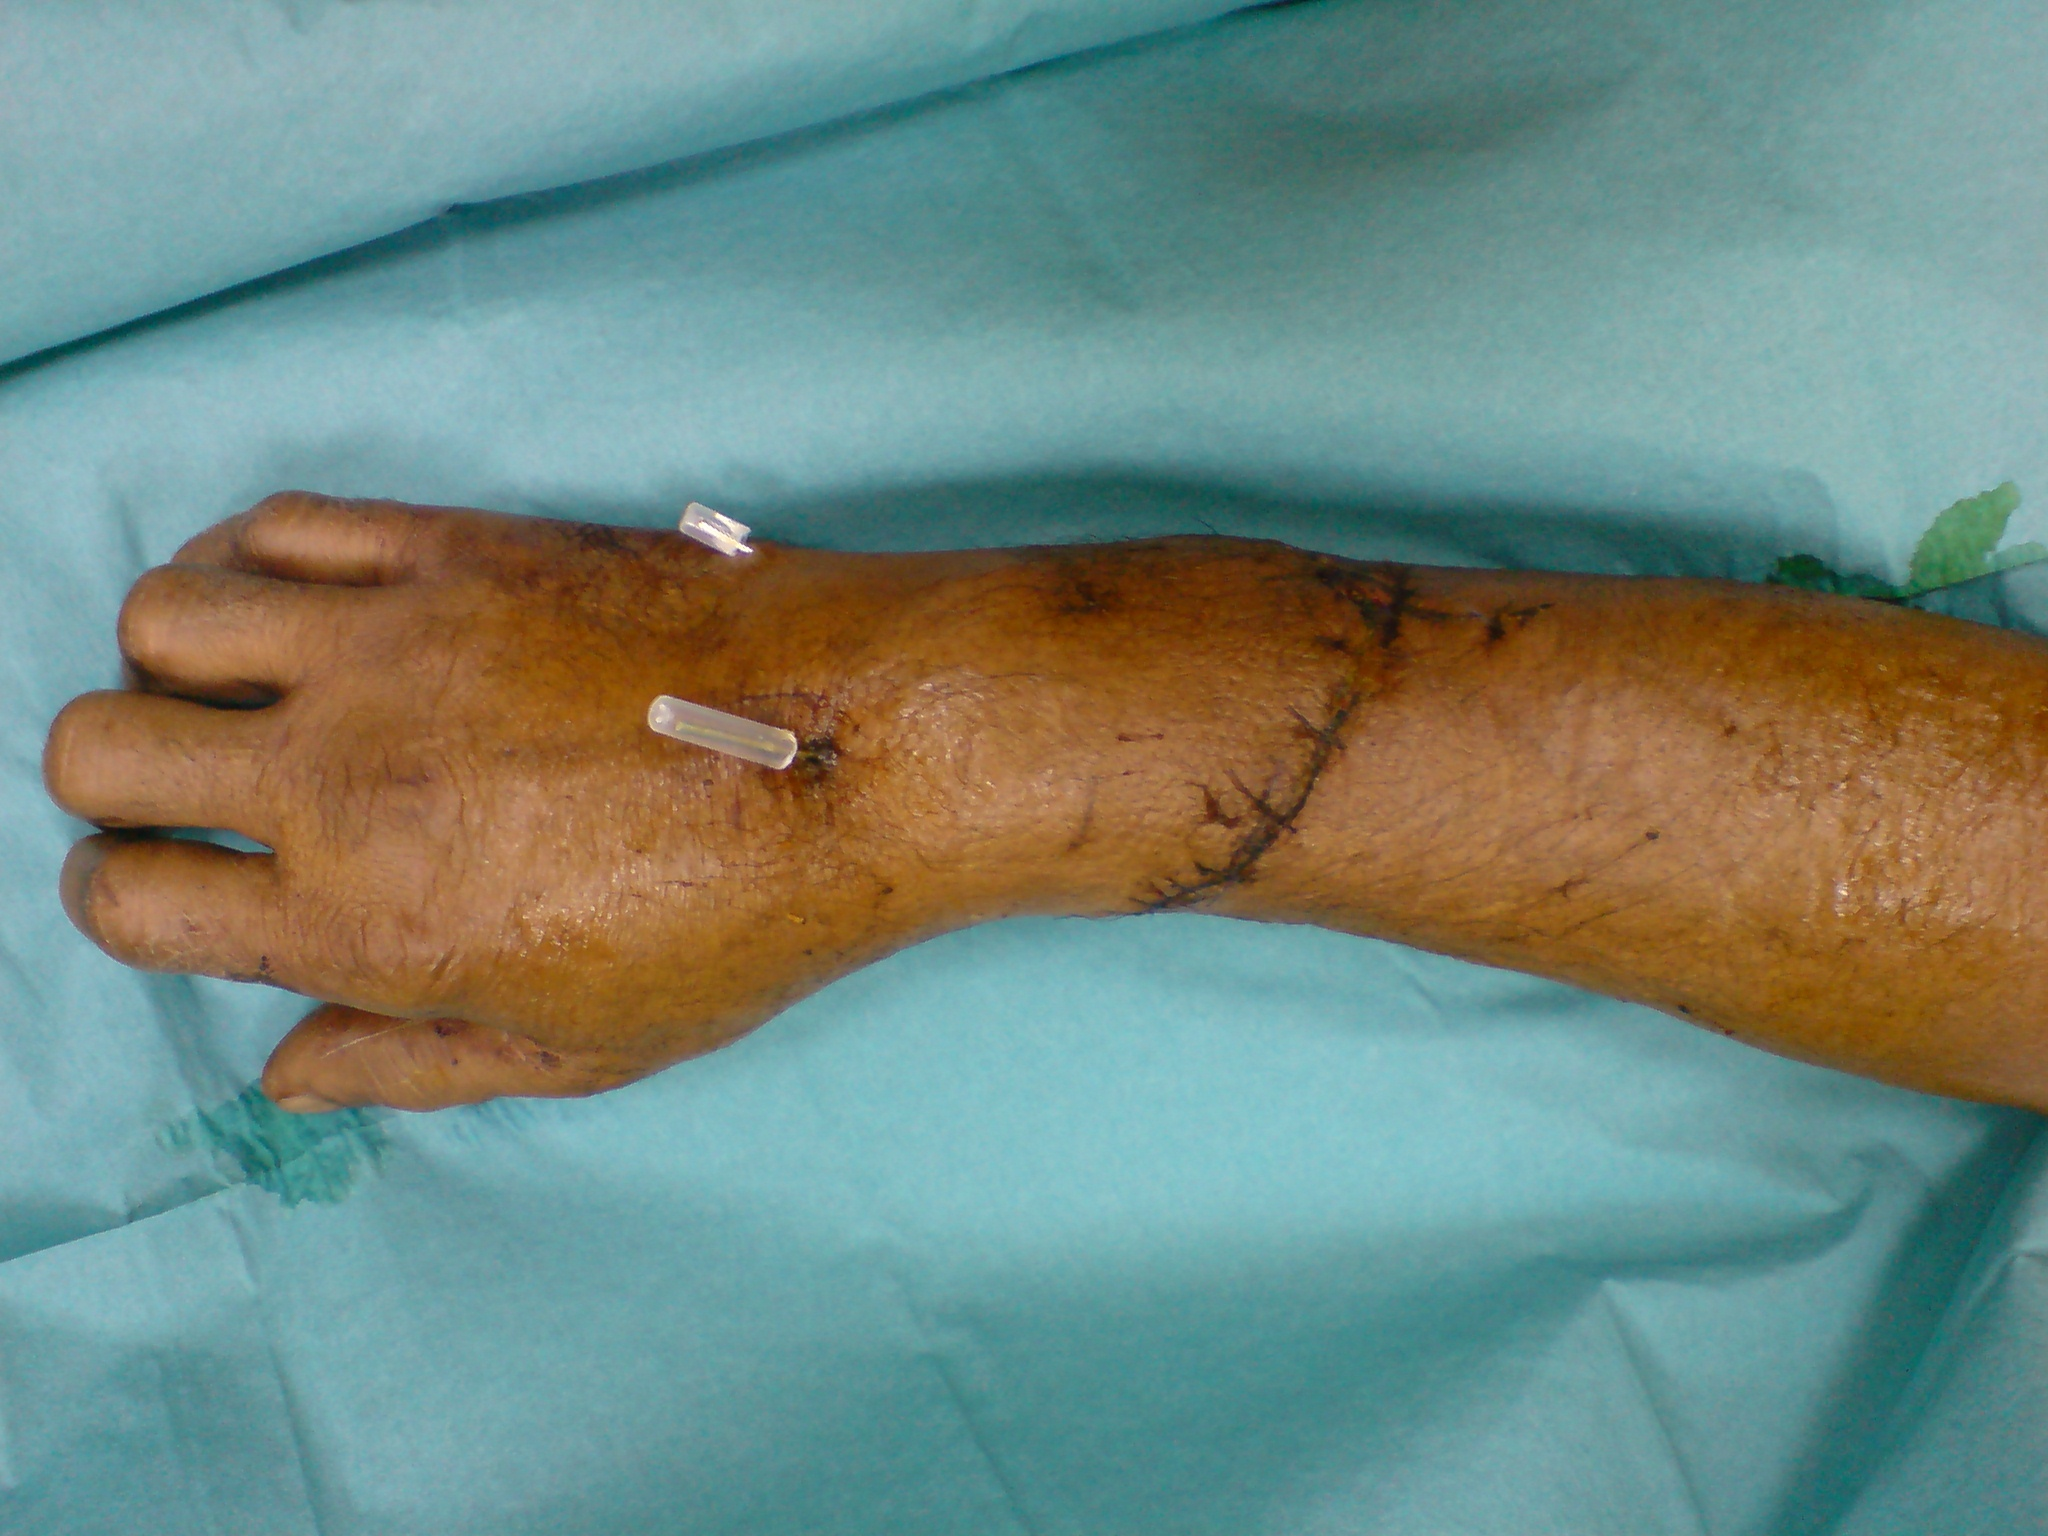 Replantation of an Amputated Hand: A Rare Case Report and